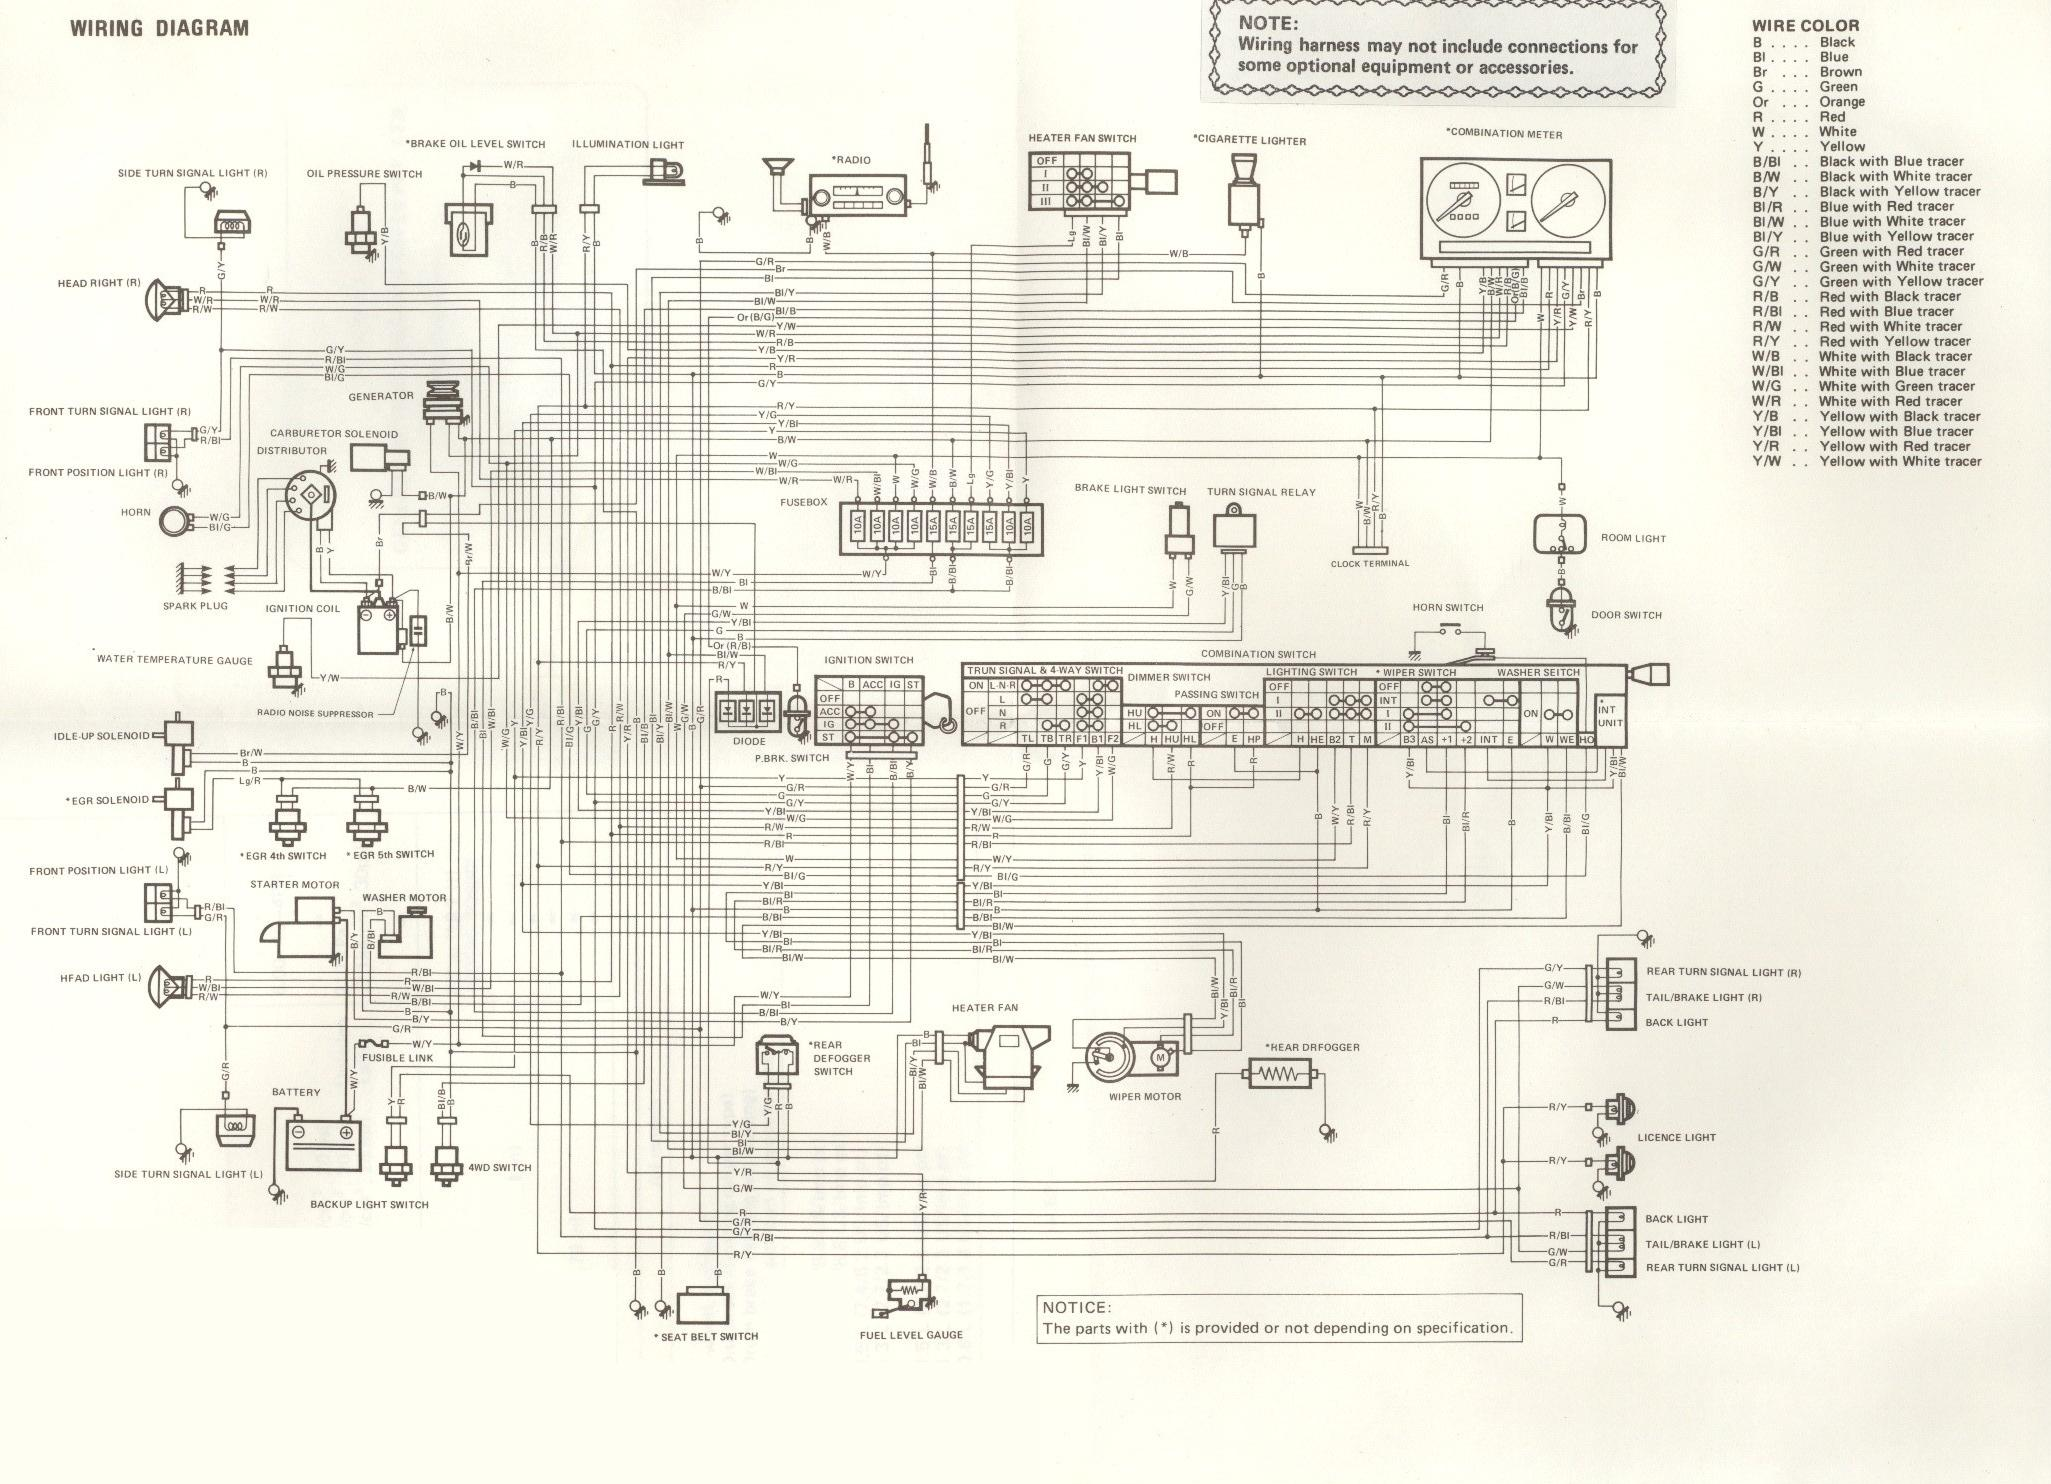 suzuki samurai wiringdiagram LJDoMre suzuki lights wiring diagram wiring diagram shrutiradio Suzuki Motorcycle Wiring Diagrams at suagrazia.org